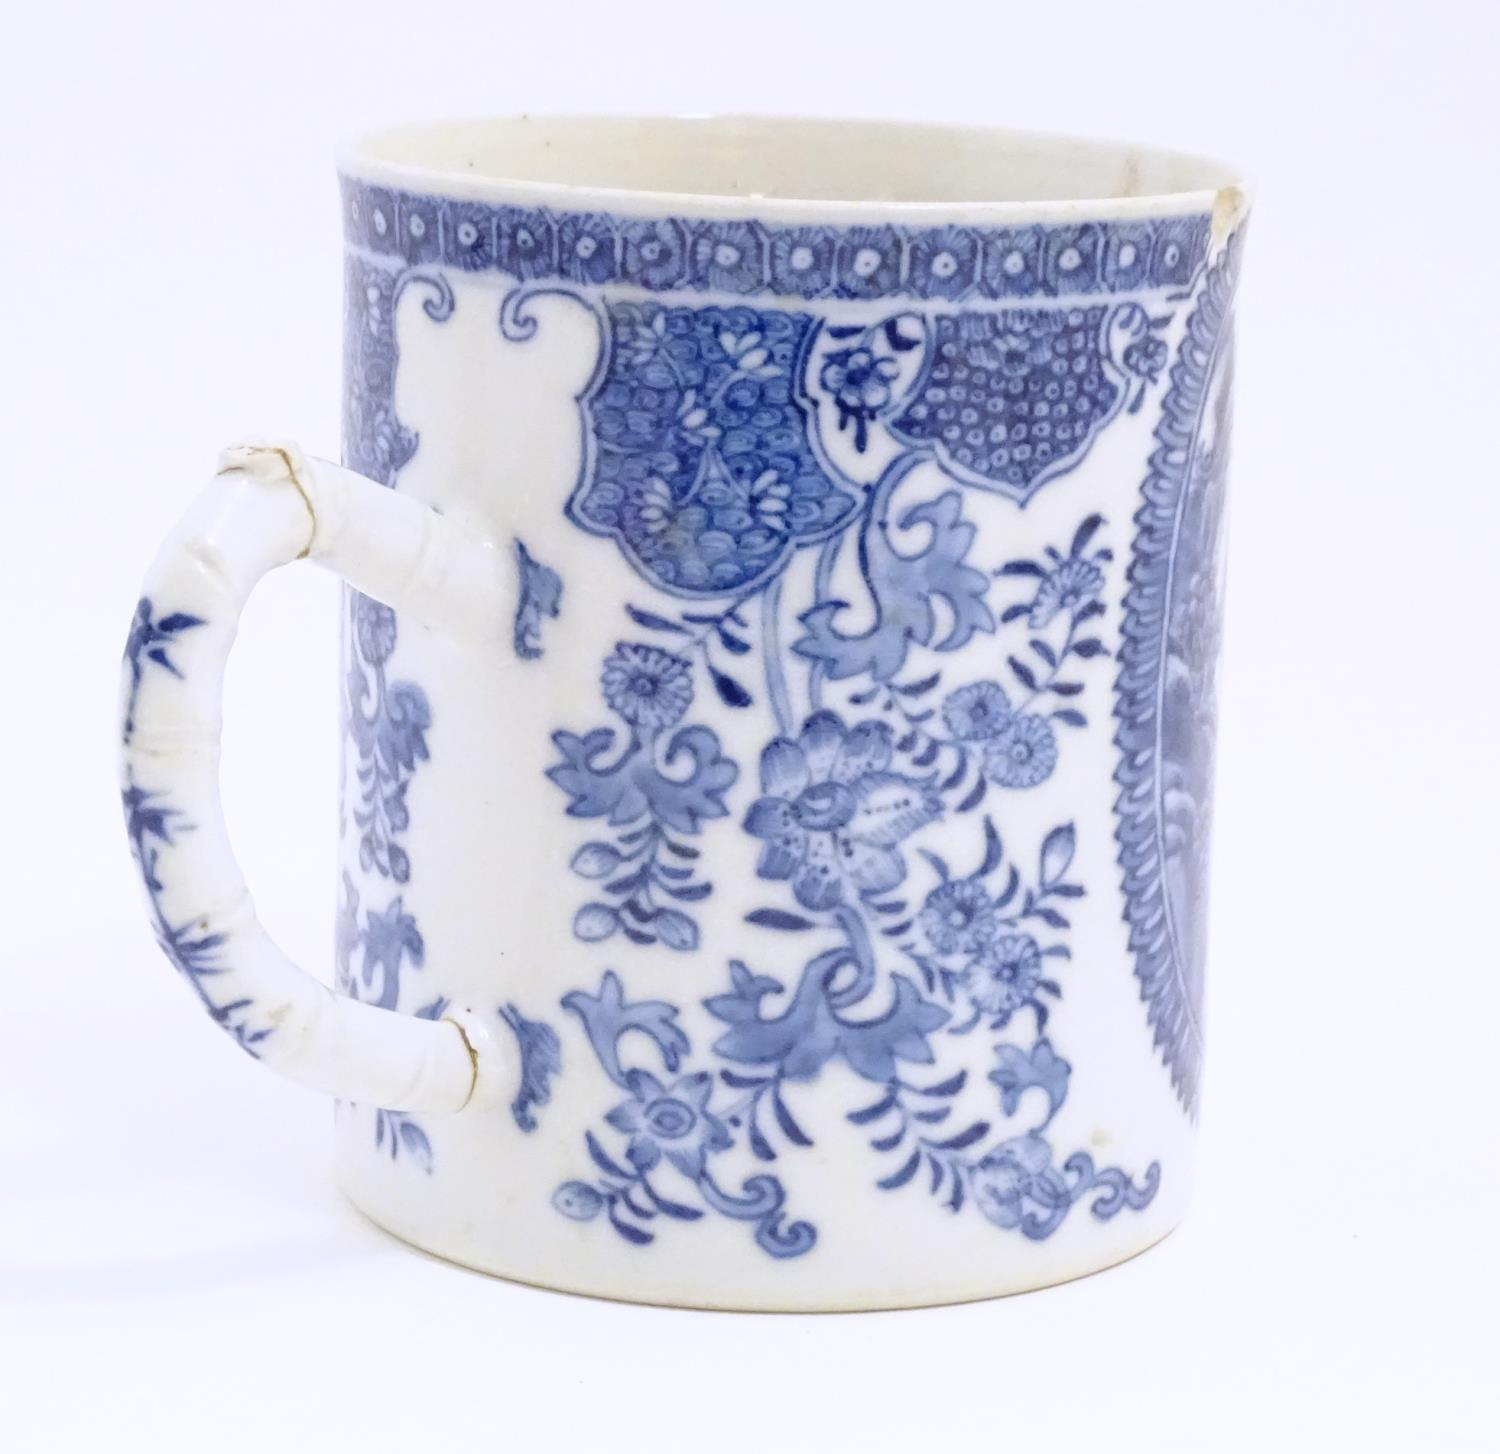 A Chinese blue and white export mug depicting a landscape scene with pagodas, with floral and - Image 3 of 6